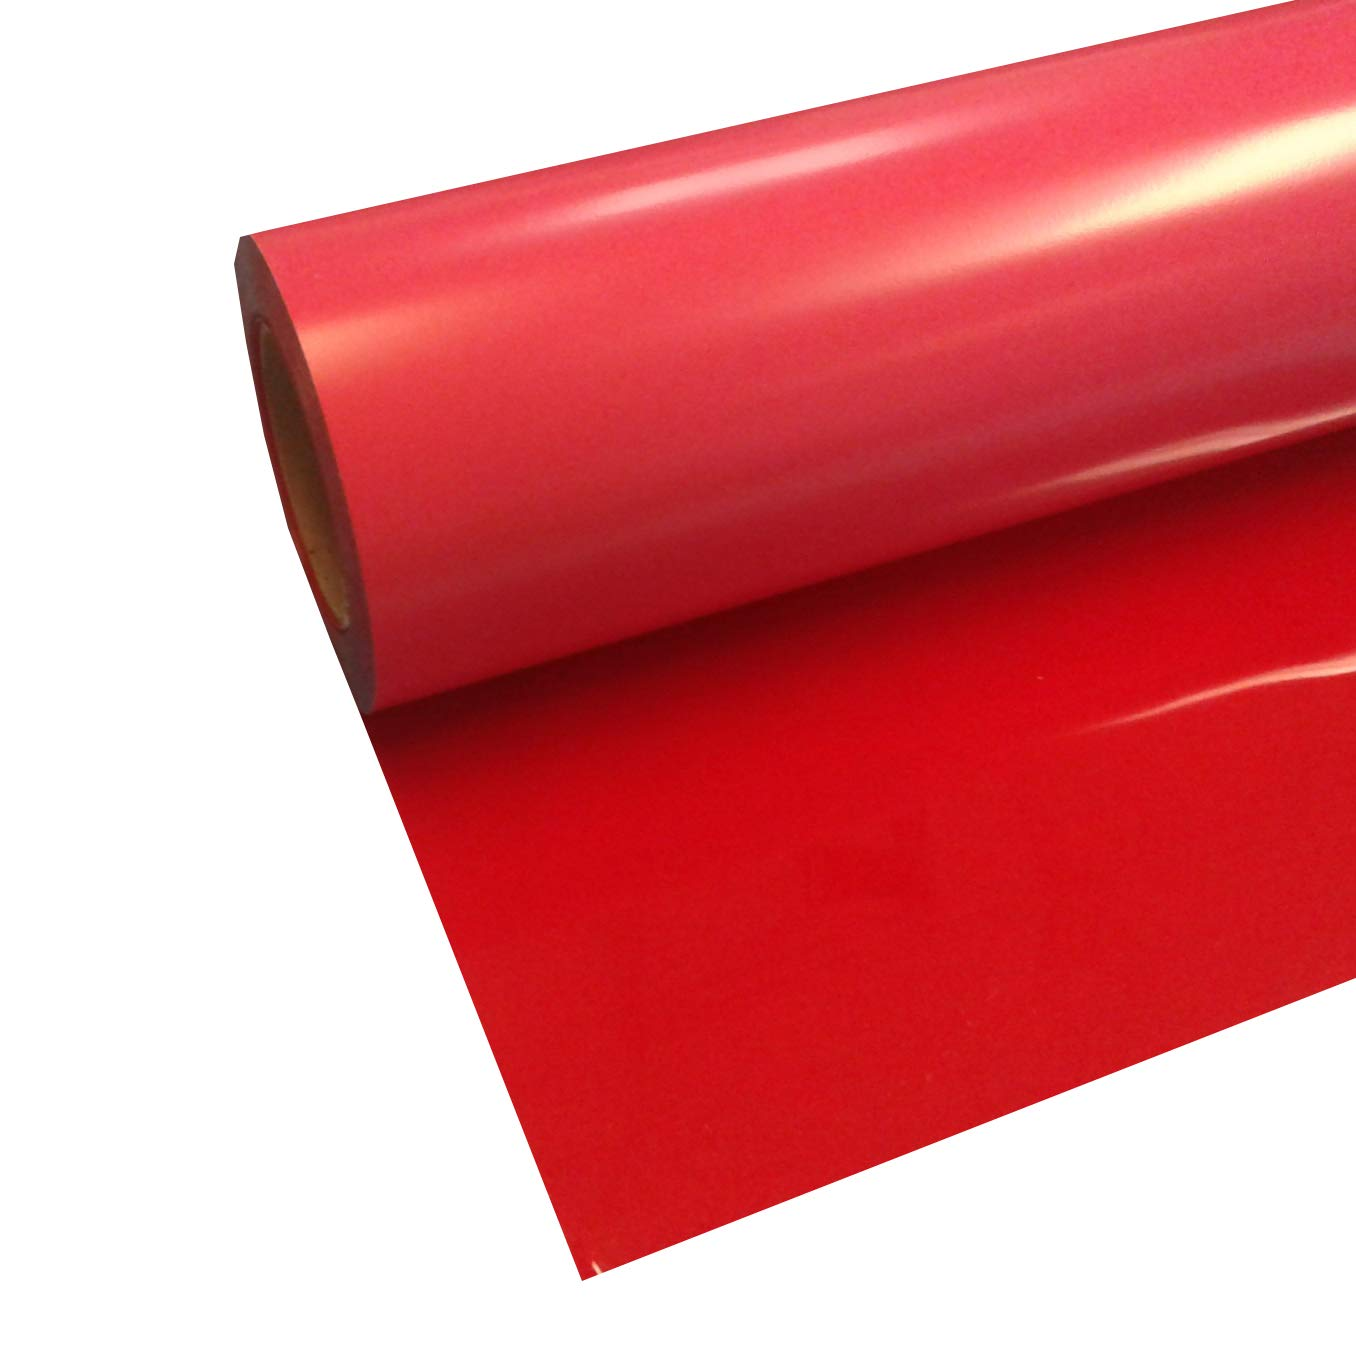 Siser Easyweed Stretch Red 15'' x 15' Iron on Heat Transfer Vinyl Roll Coaches World